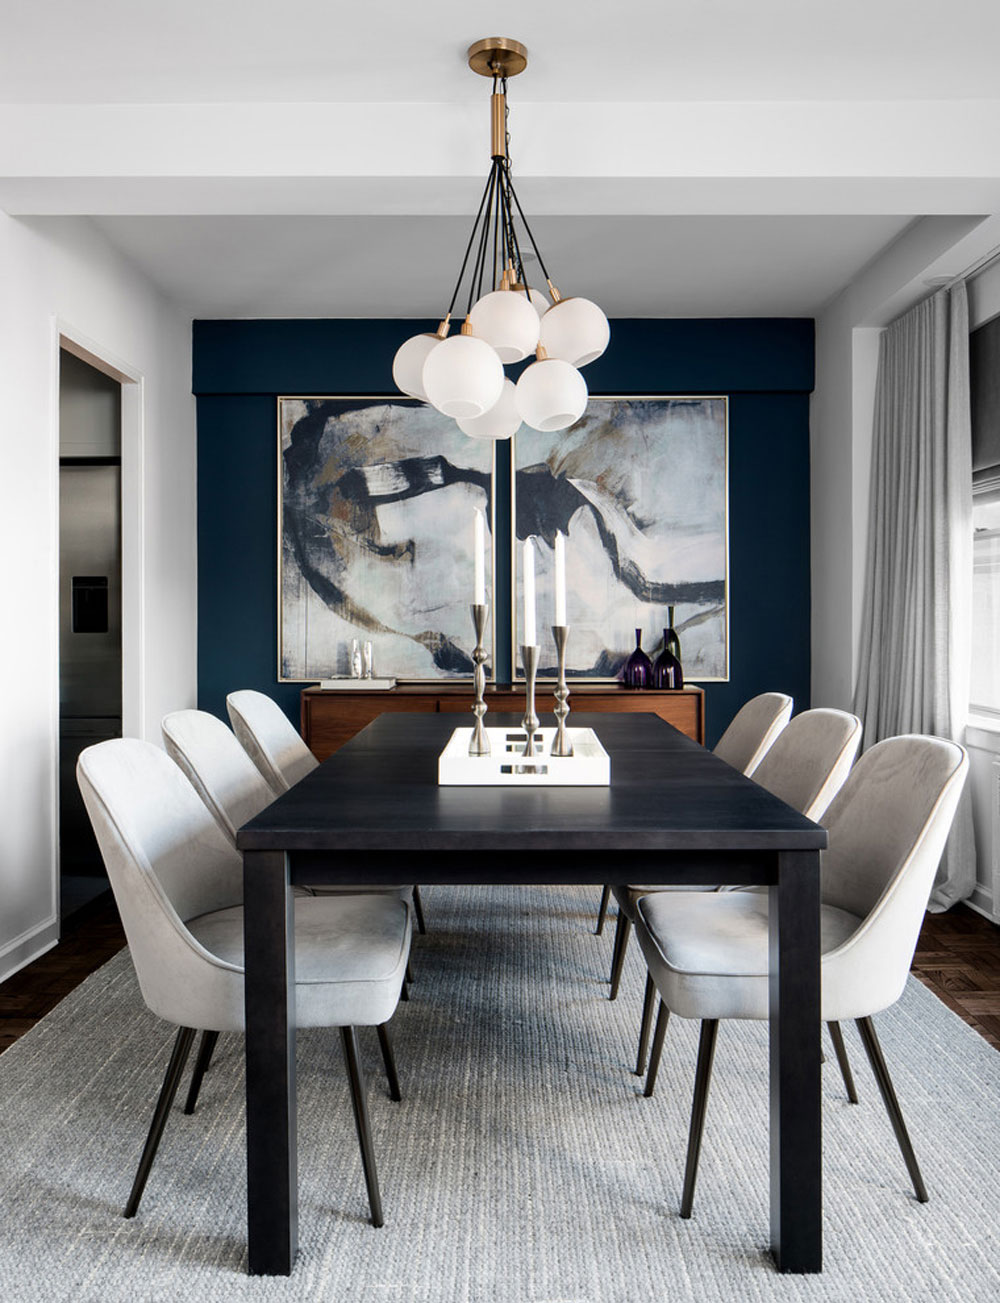 5 Dining Room Decorating Ideas You Need This Fall Season 1